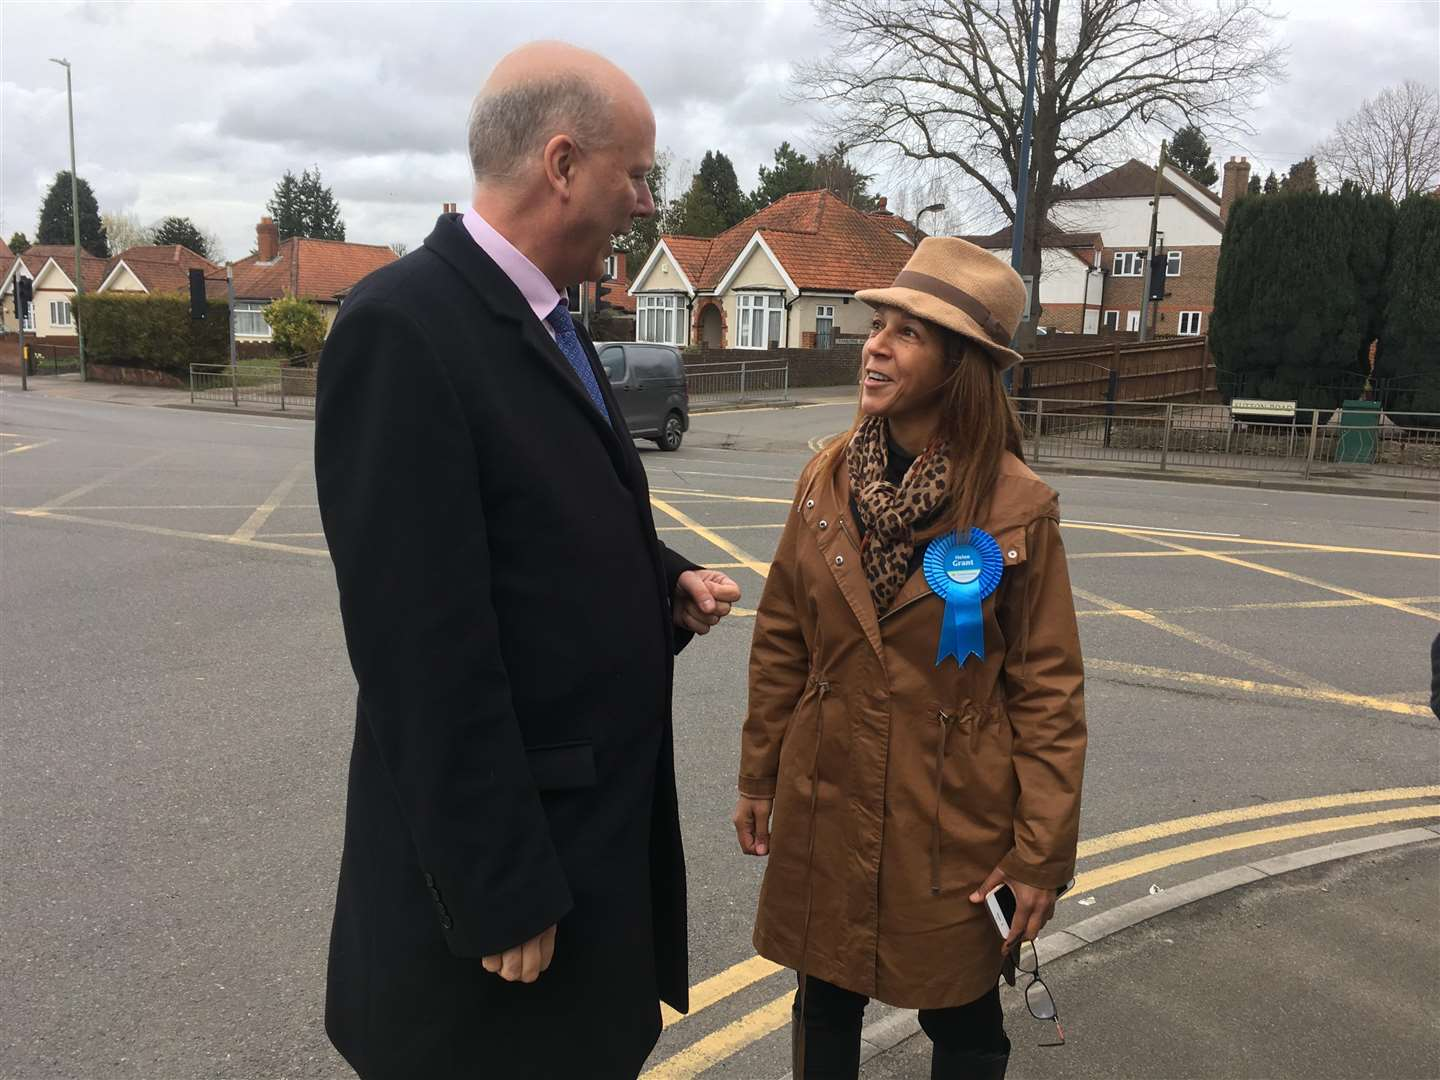 Chris Grayling met with Helen Grant and other Conservative campaigners in Maidstone. (1374809)